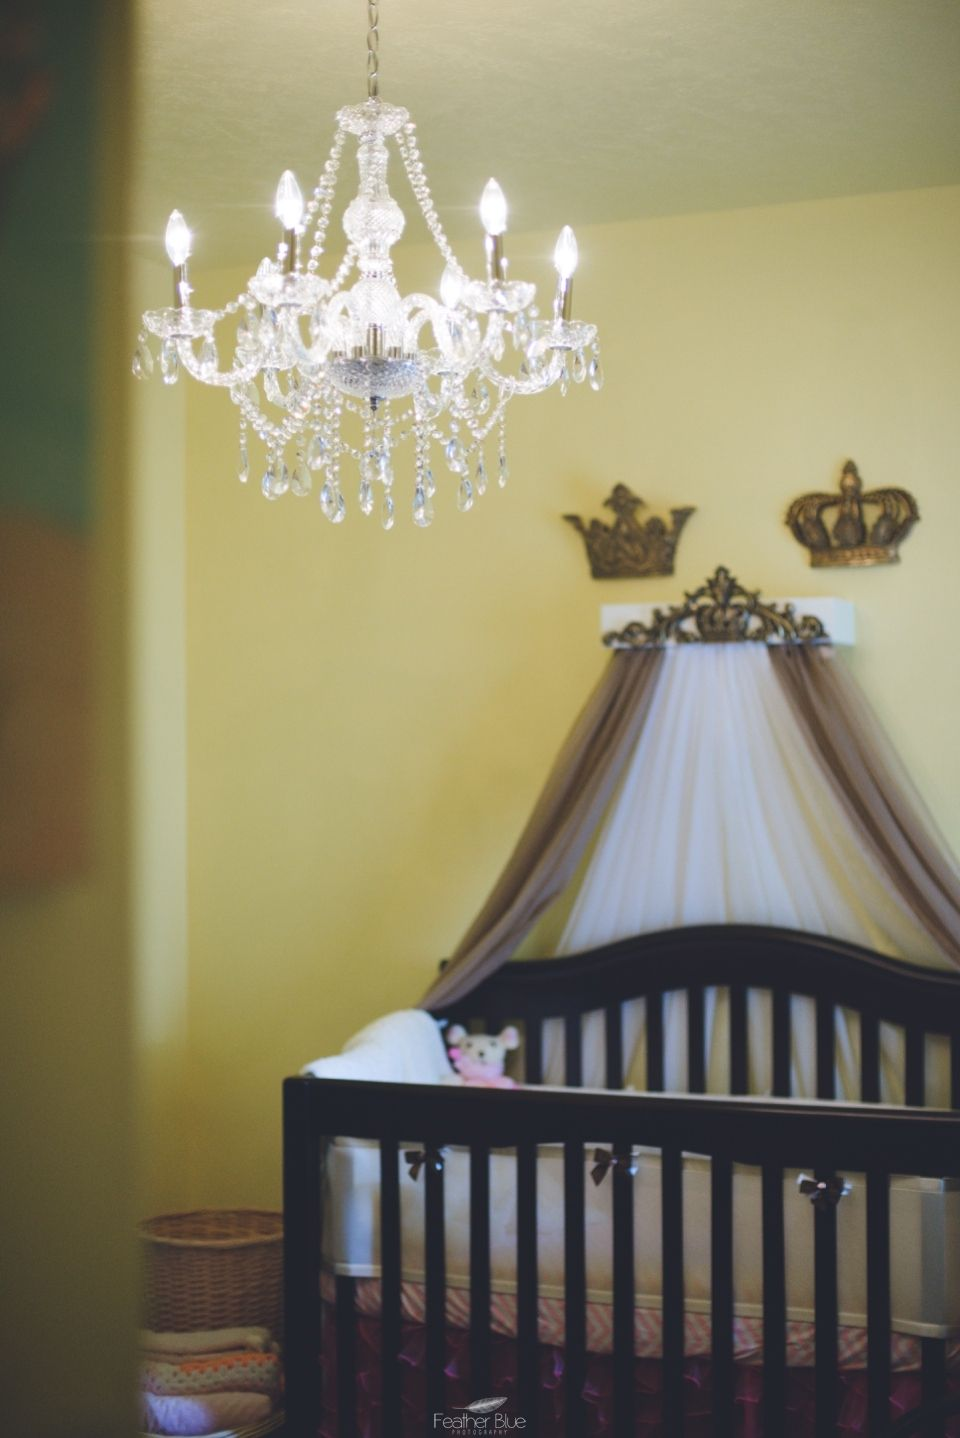 Our Royal Nursery Chandler His Hers Crowns Custom Made Bed Crown Curtains Soft Sweet Short Designs Yellow Gold Peach Bling C